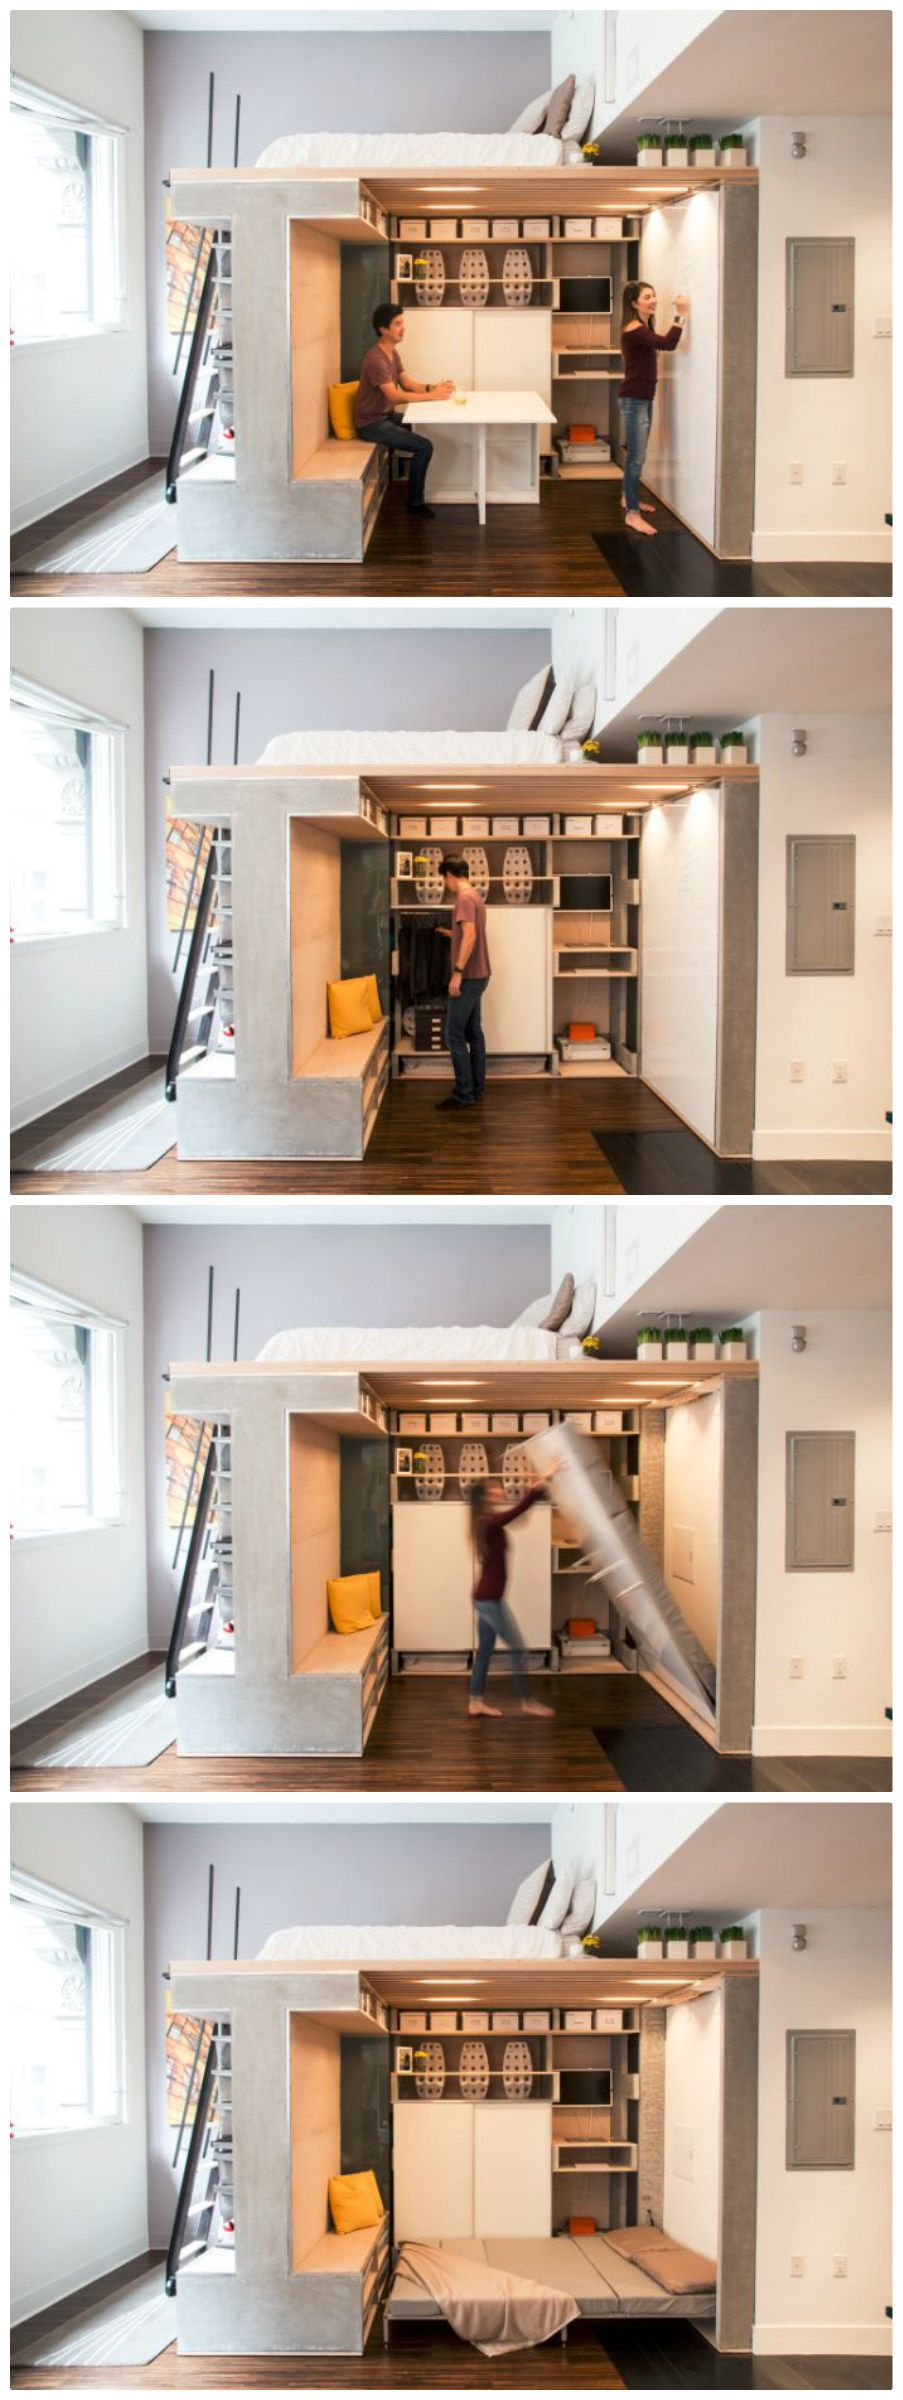 Multifunctional loft transforms a small condo into a dynamic space